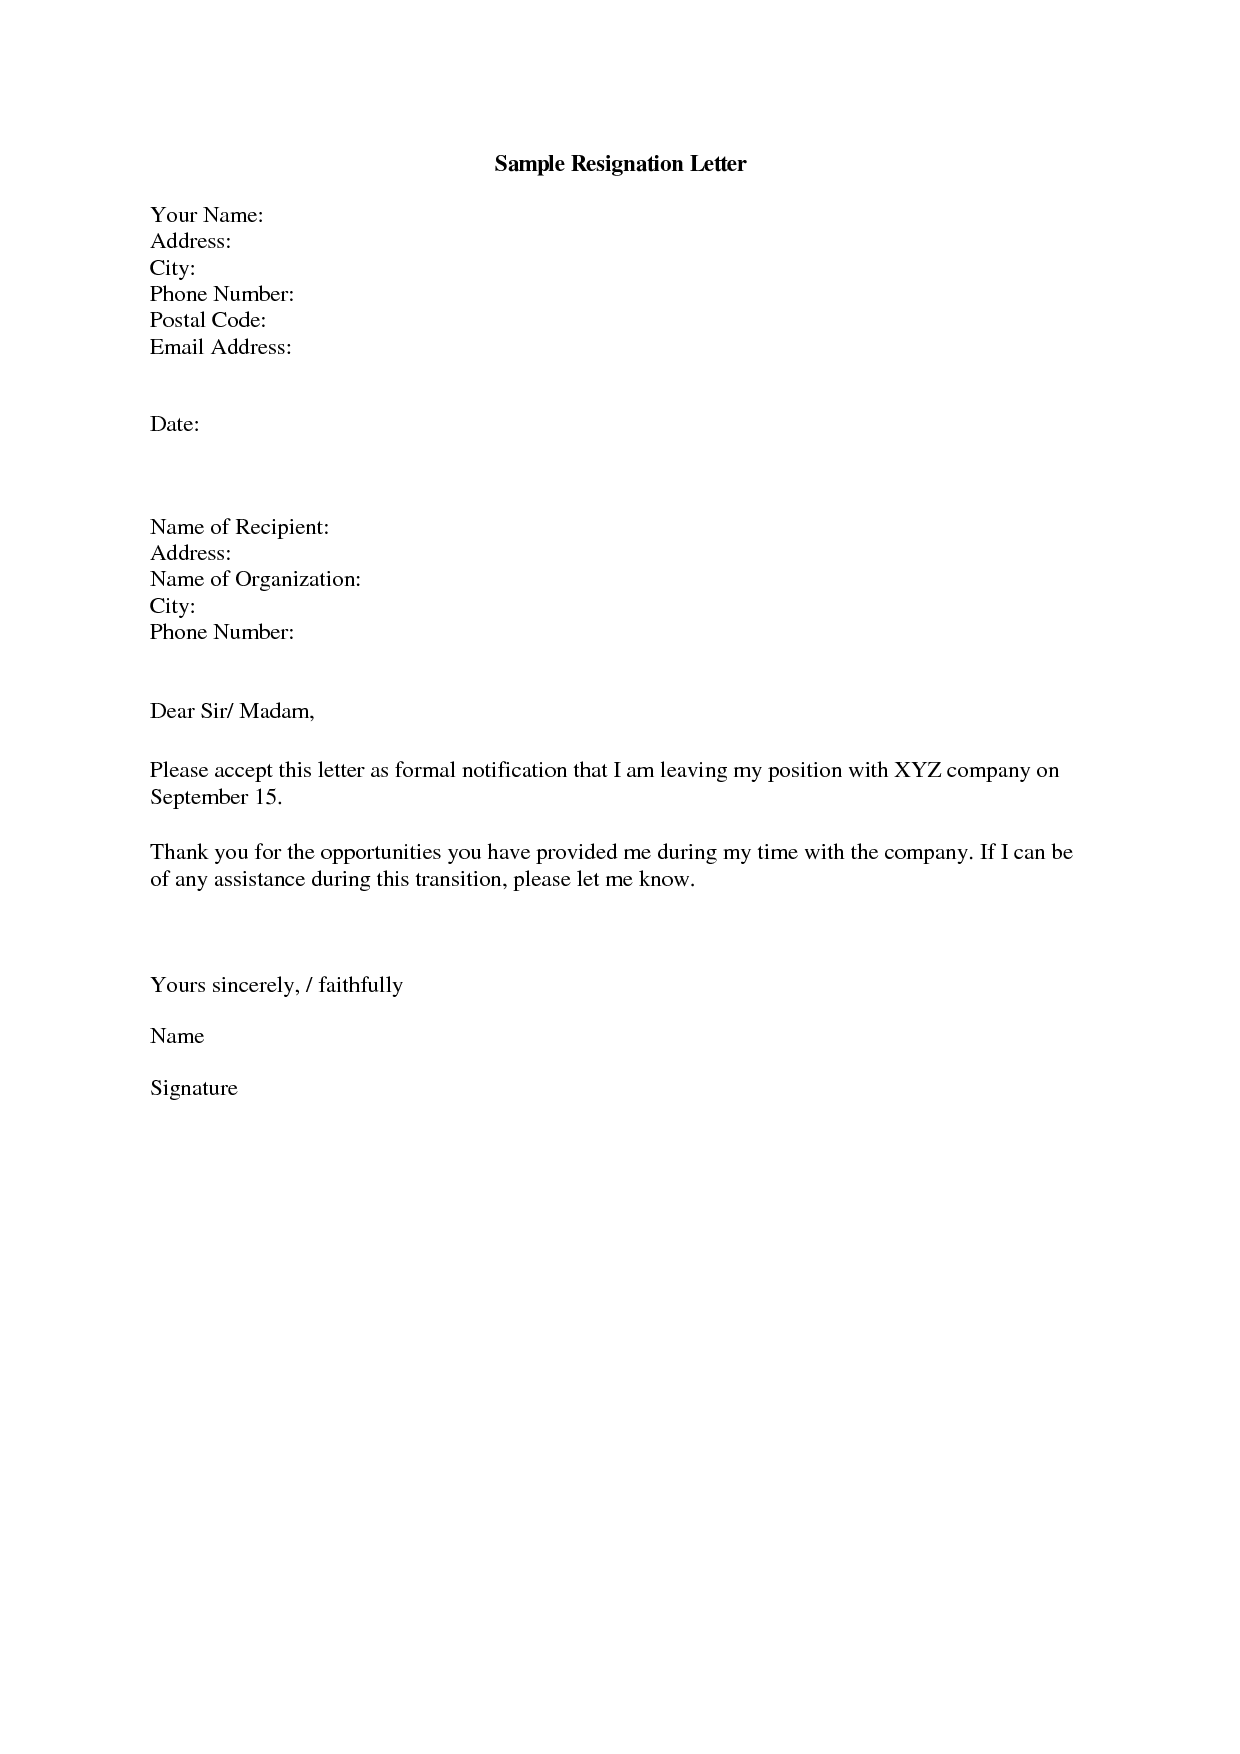 resignation letter sample professional resume cover letter resignation letter sample resignation letter sample northeastern job resignation letter sample short and sweet resignation